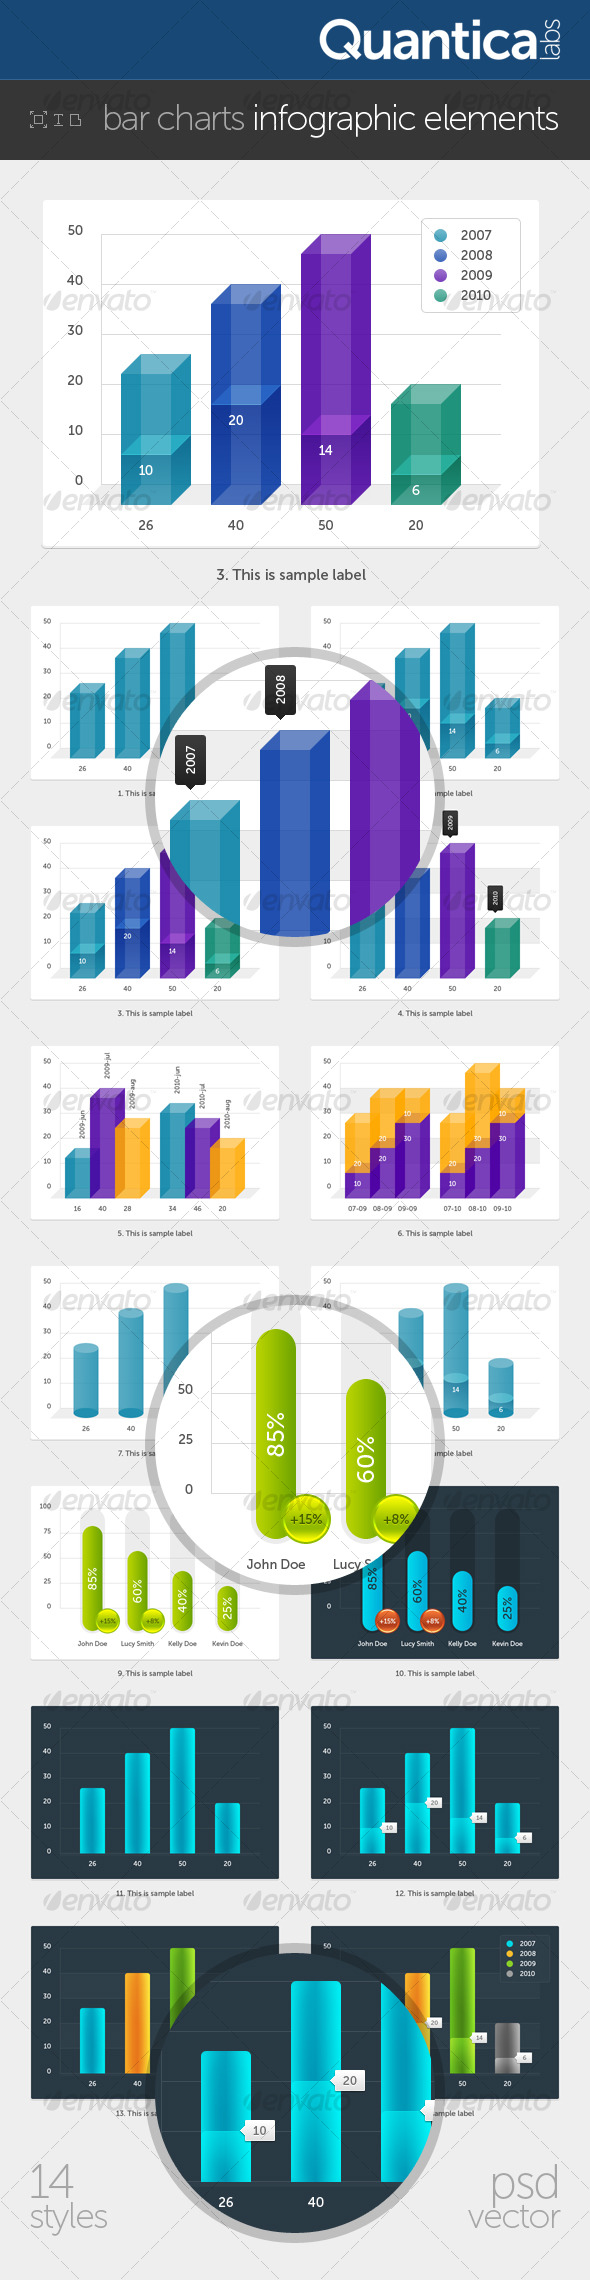 GraphicRiver Bar Charts Infographic Elements 131151